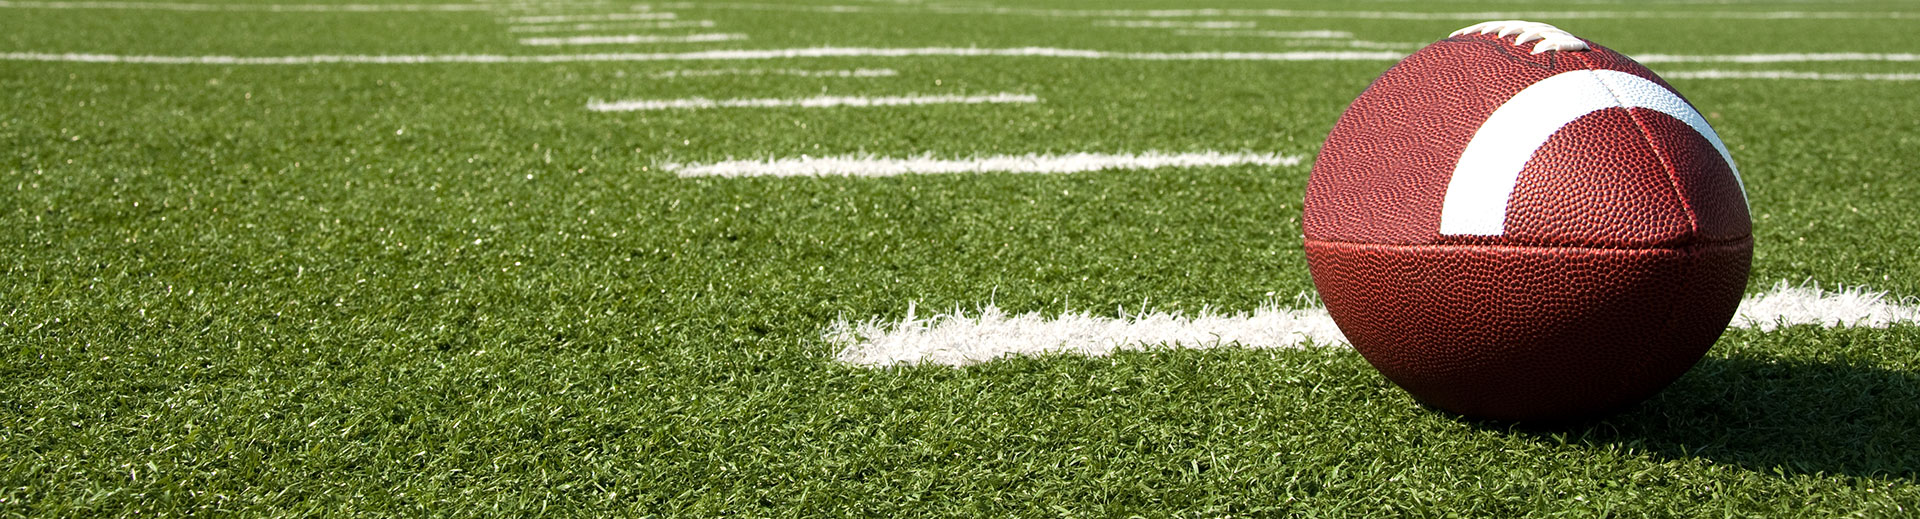 Photo of a football resting on a football field